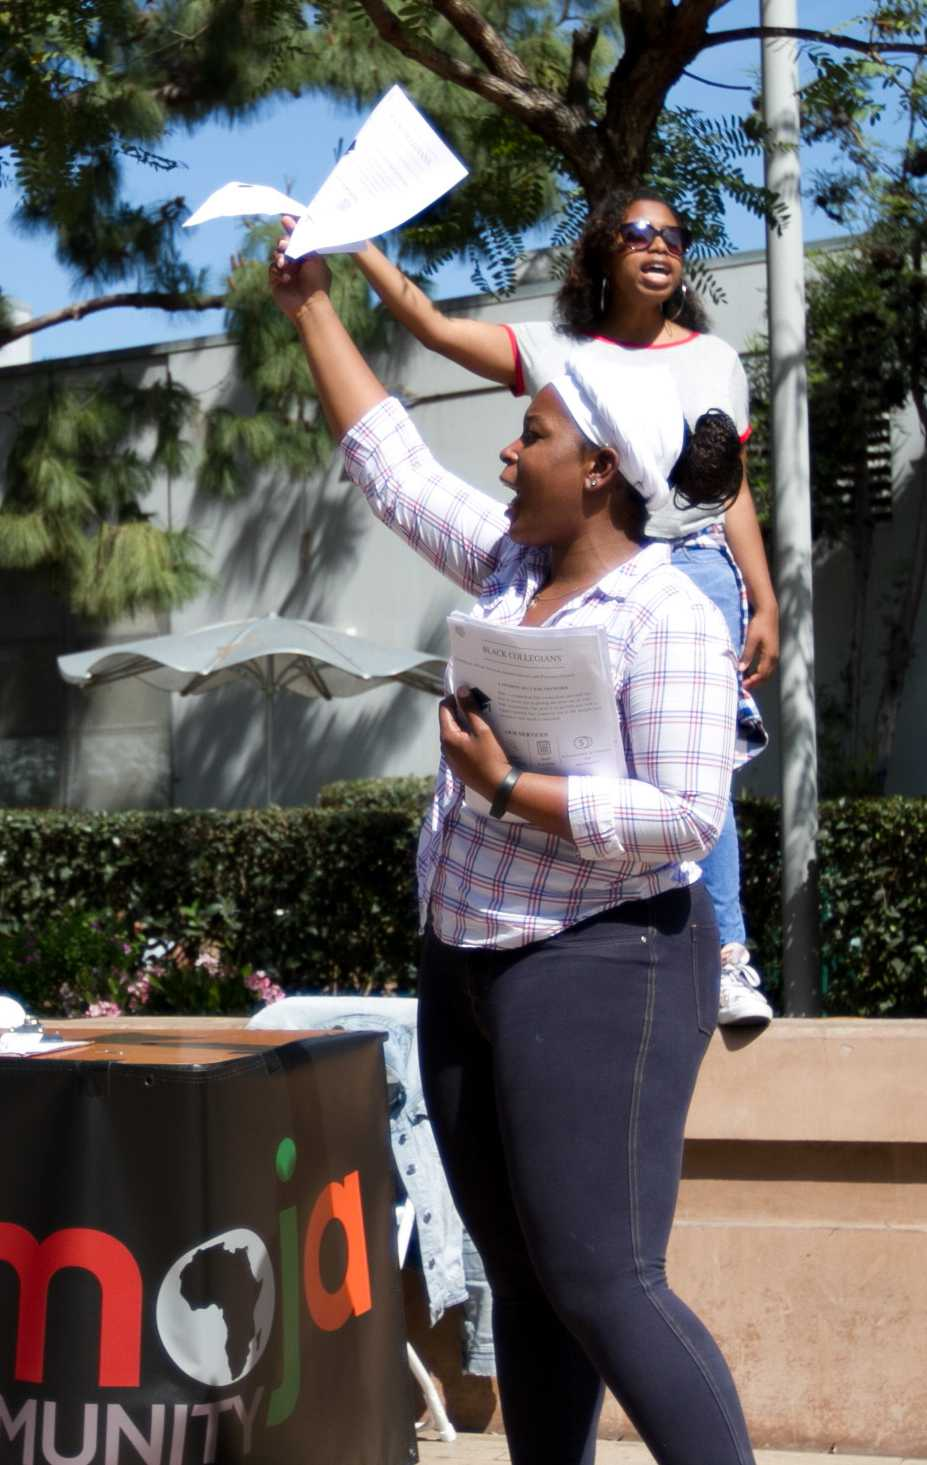 Black Collegians activity director Jessica Mebane (front), and Vice President Monique Muepo (back) recruit new members and spread awareness for their organization at Club Awareness Day at Santa Monica College in Santa Monica California on March 14, 2017. (Photo By: Zane Meyer)